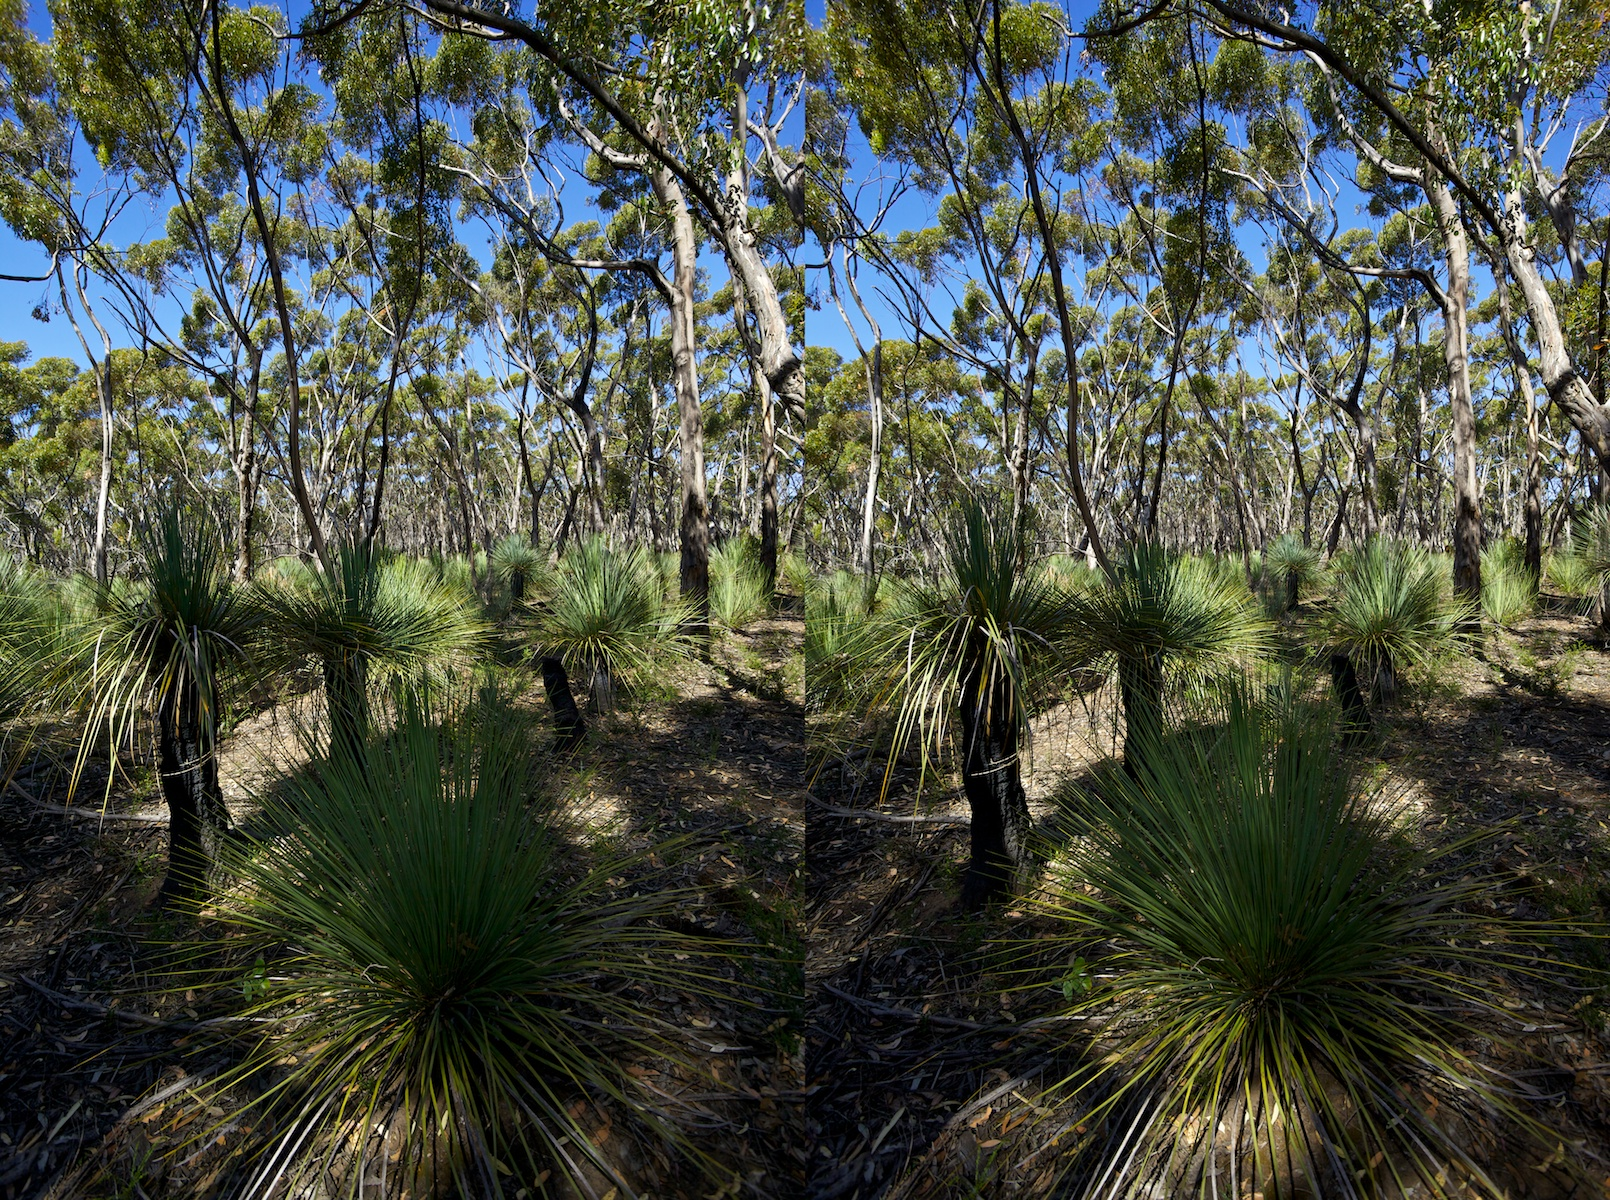 2011 South Australia, Kangaroo Island, Остров Кенгуру, Южная Австралия, Flinders Chase, Platypus Waterholes and Rocky River Hike, 3D, stereo, cross-eyed, стерео